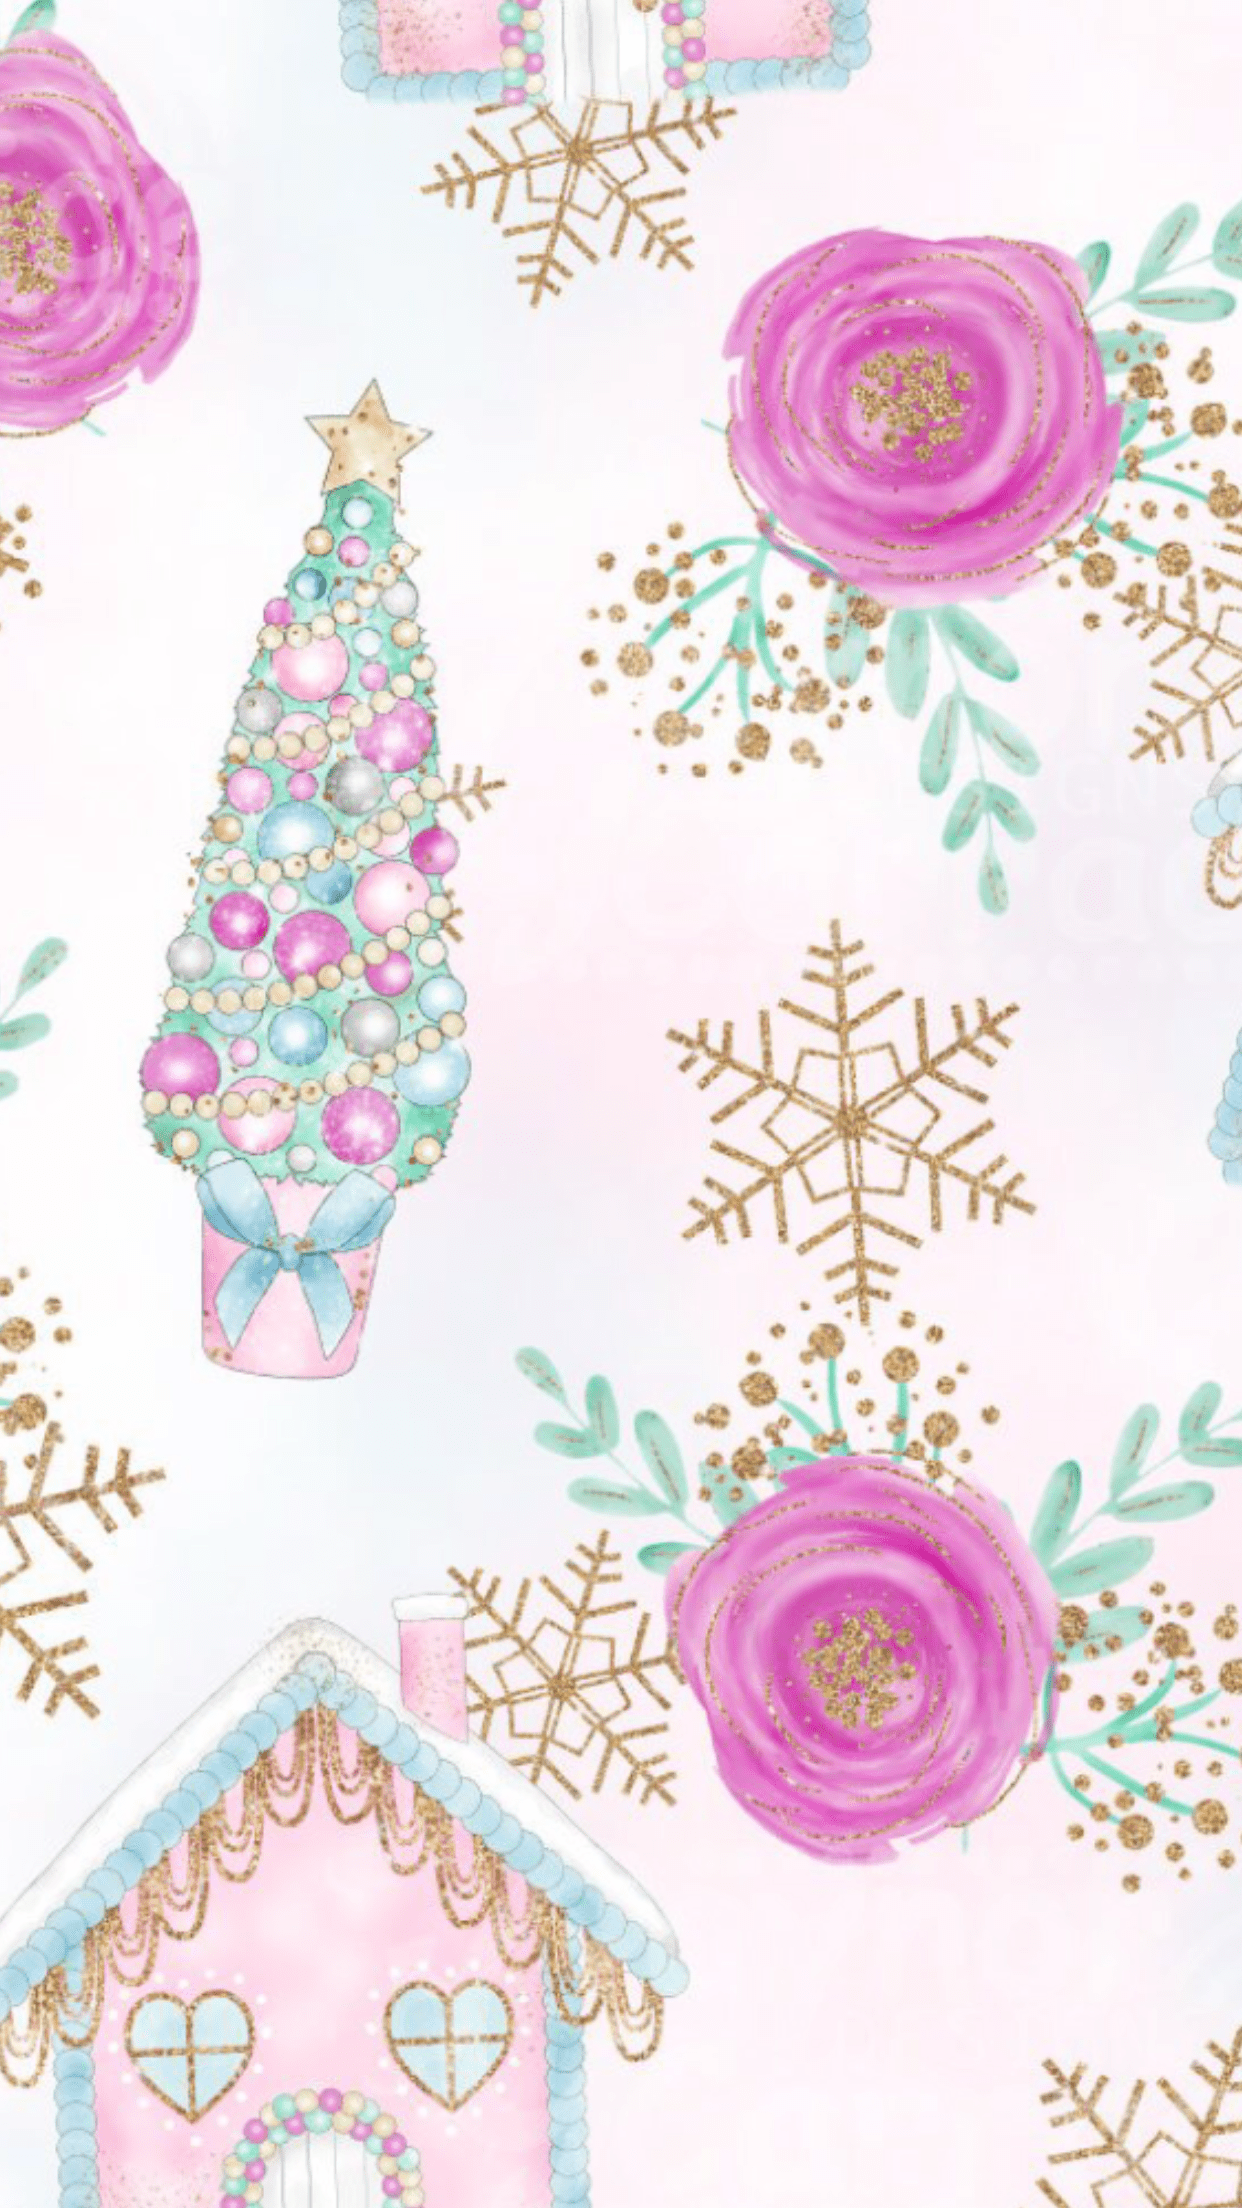 25 Free Christmas Wallpapers for iPhone